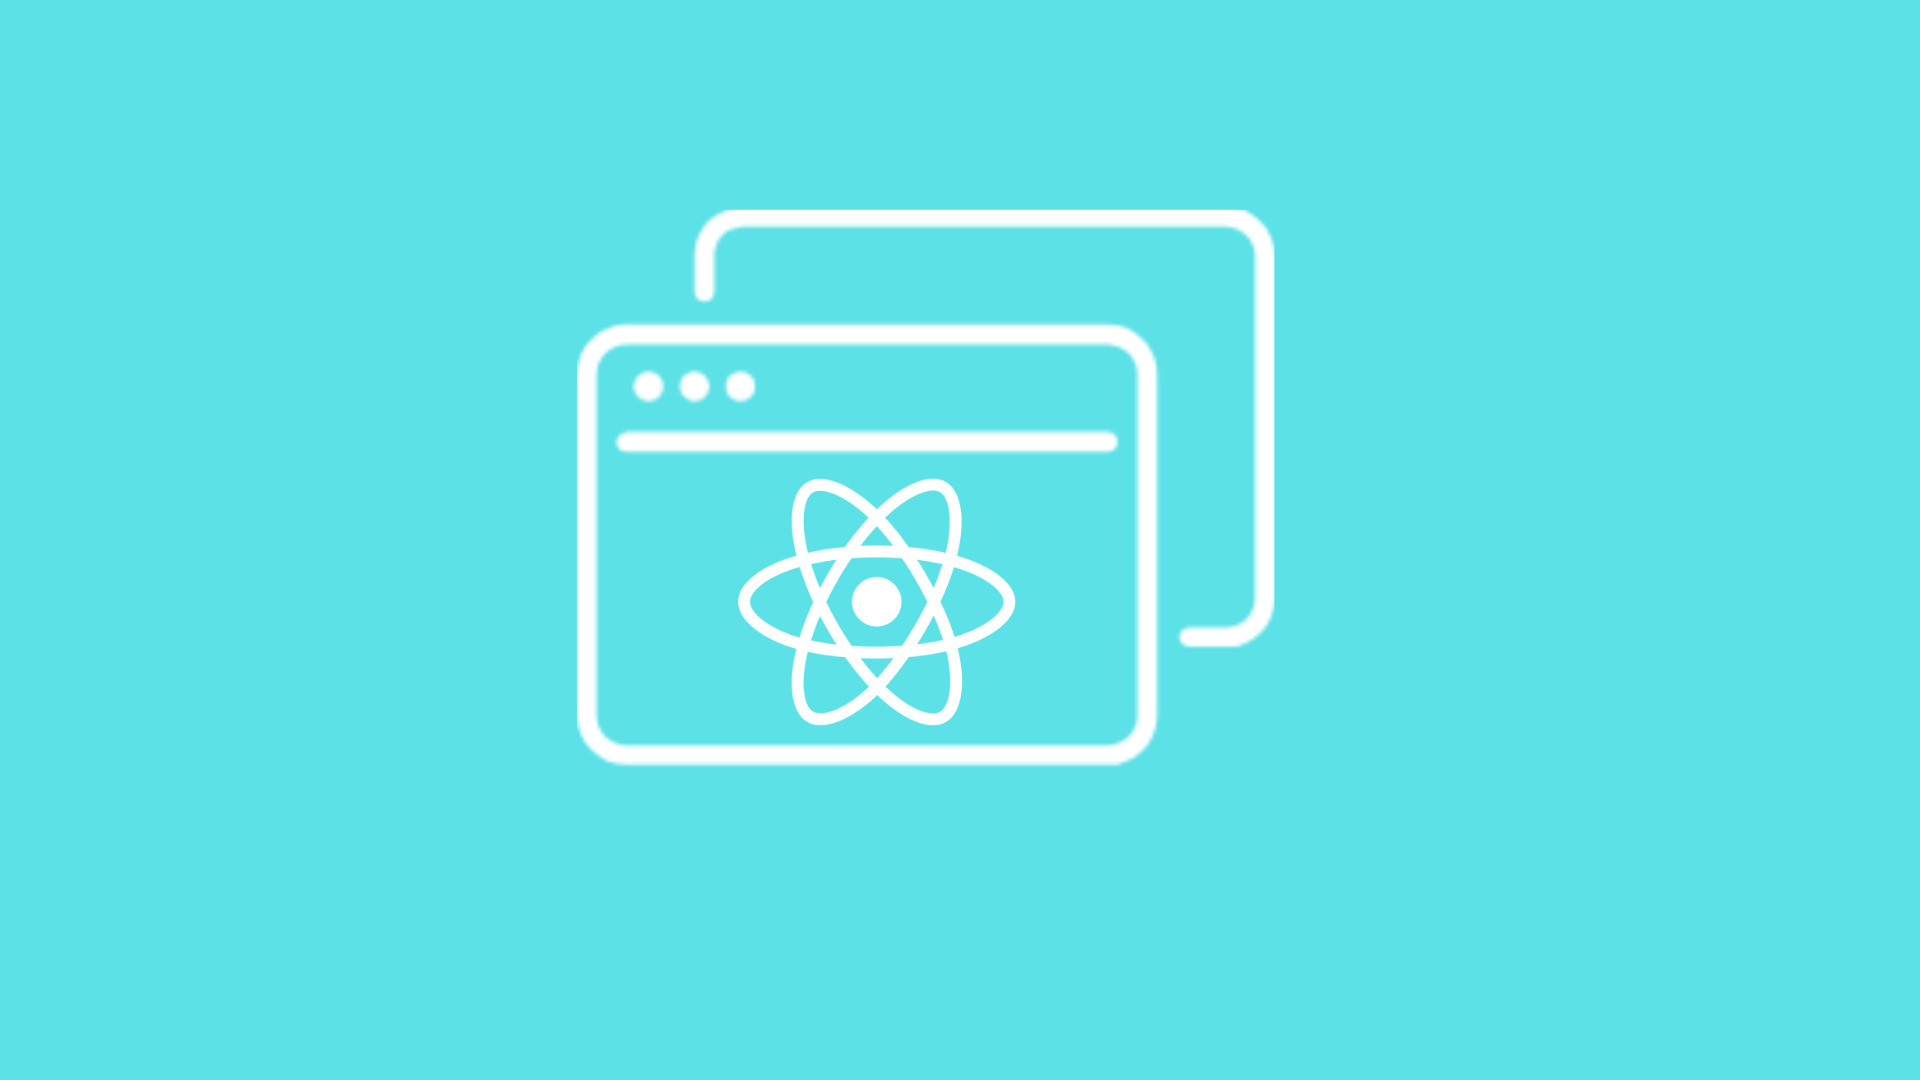 Build a simple Modal Component with React - Bits and Pieces